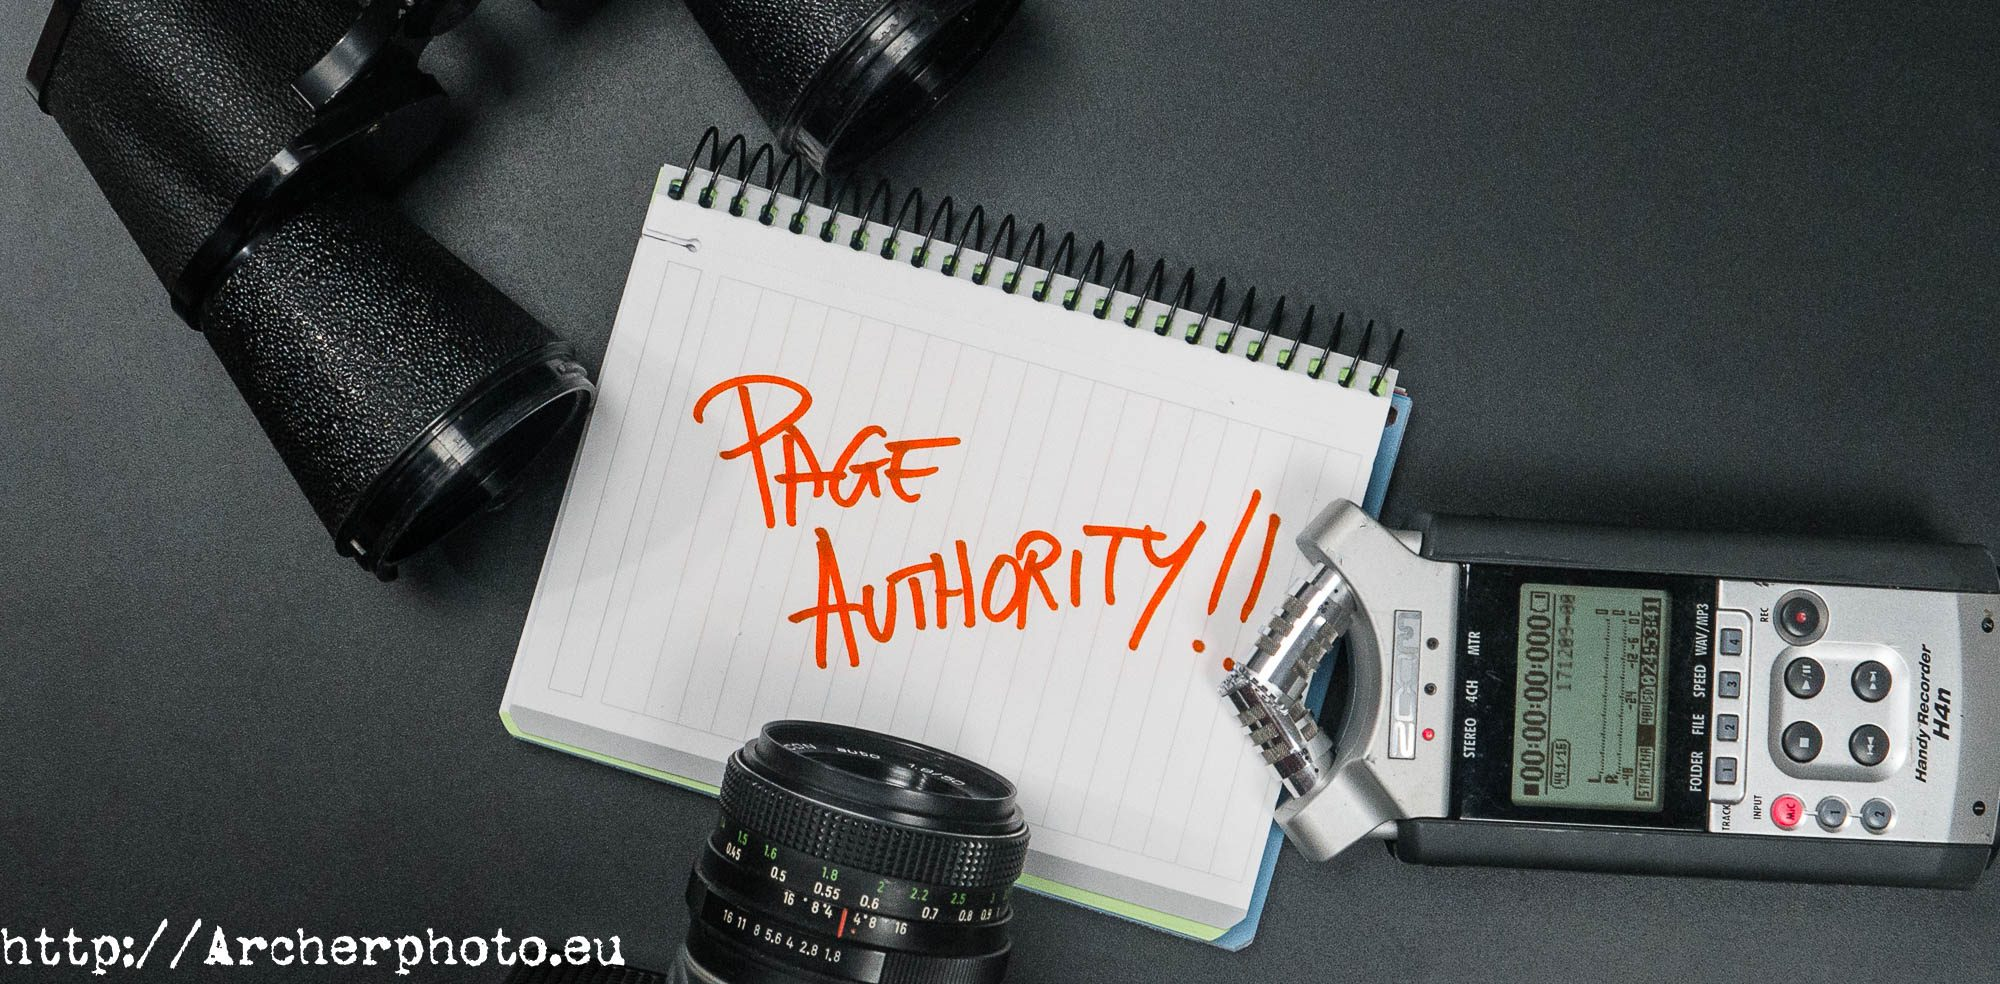 Page authority,SEO,fotografo